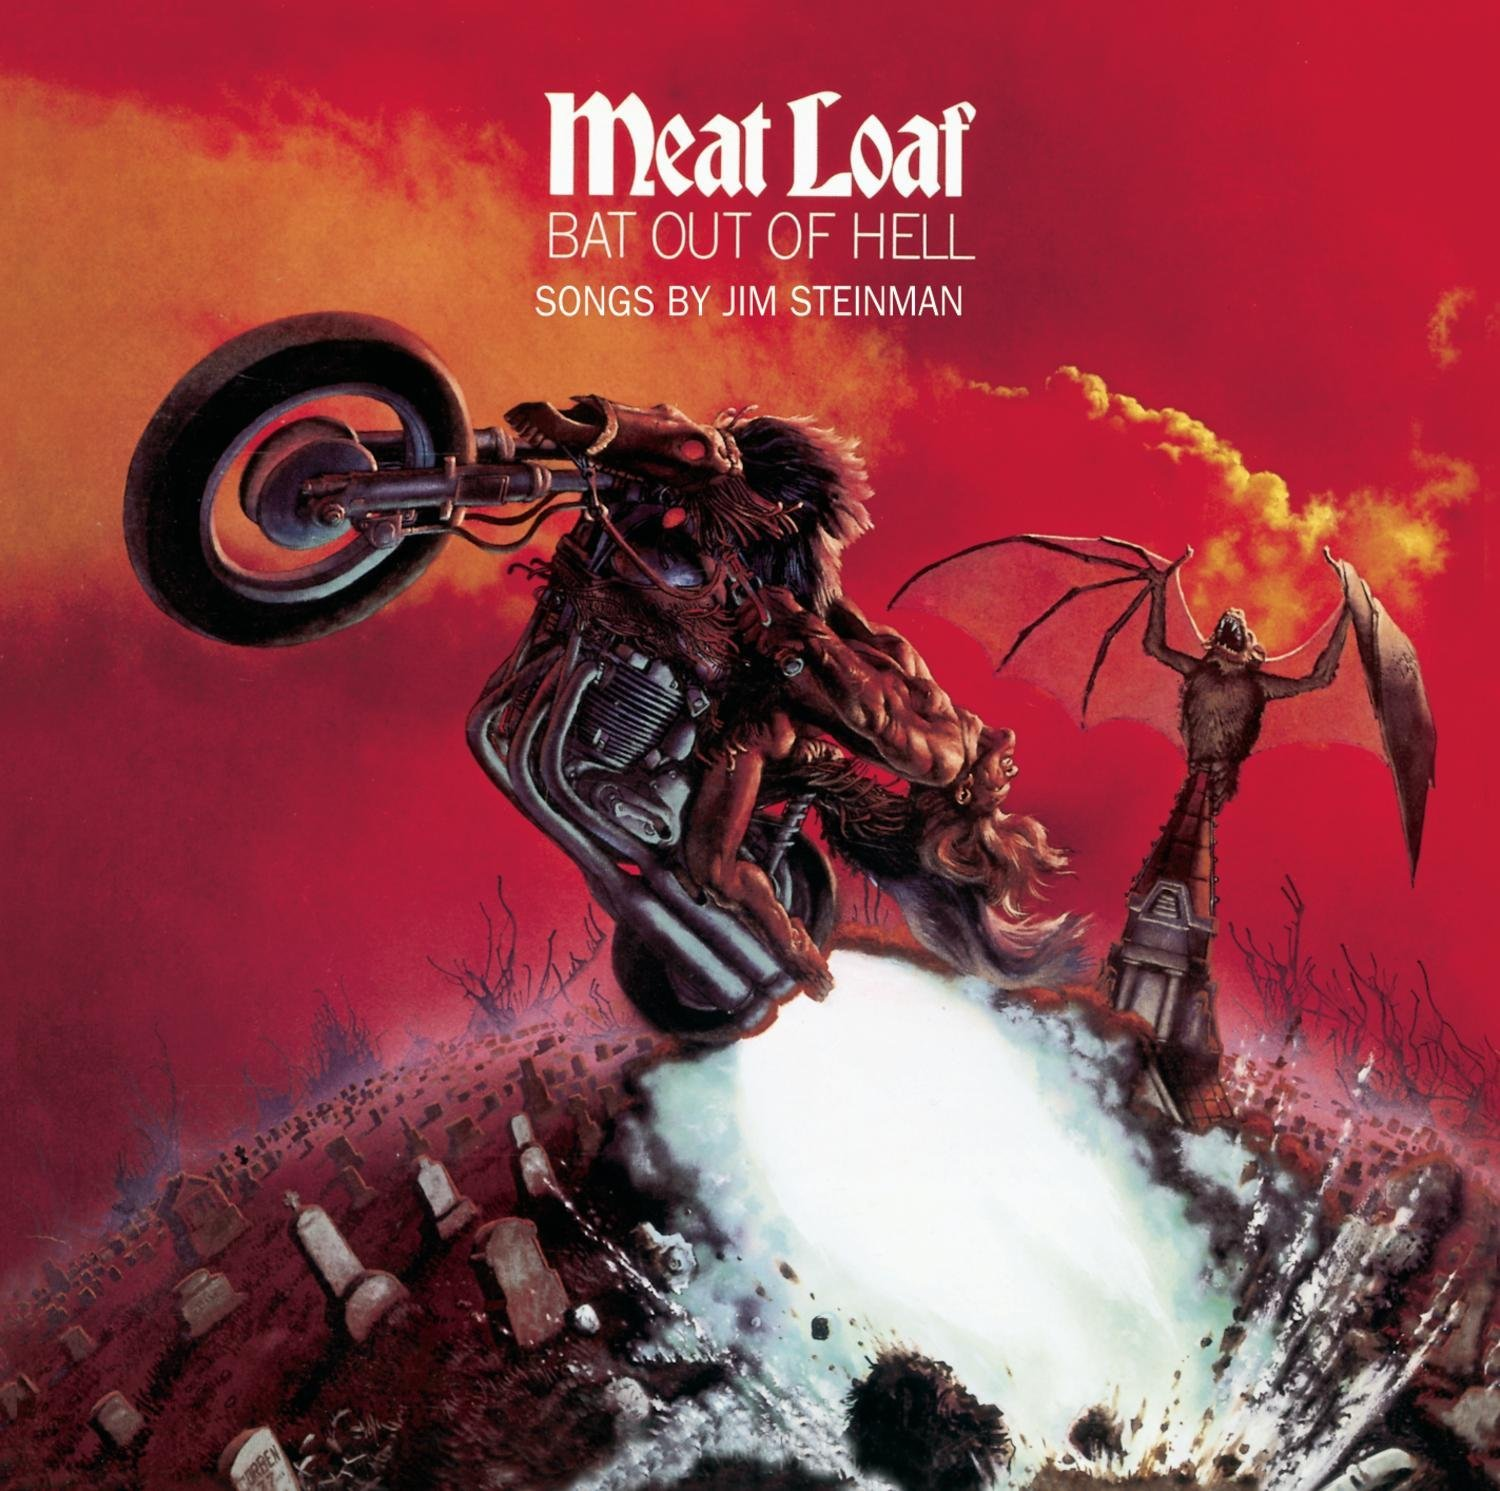 Bat Out Of Hell At 40: What The Hell Explains Its Appeal?